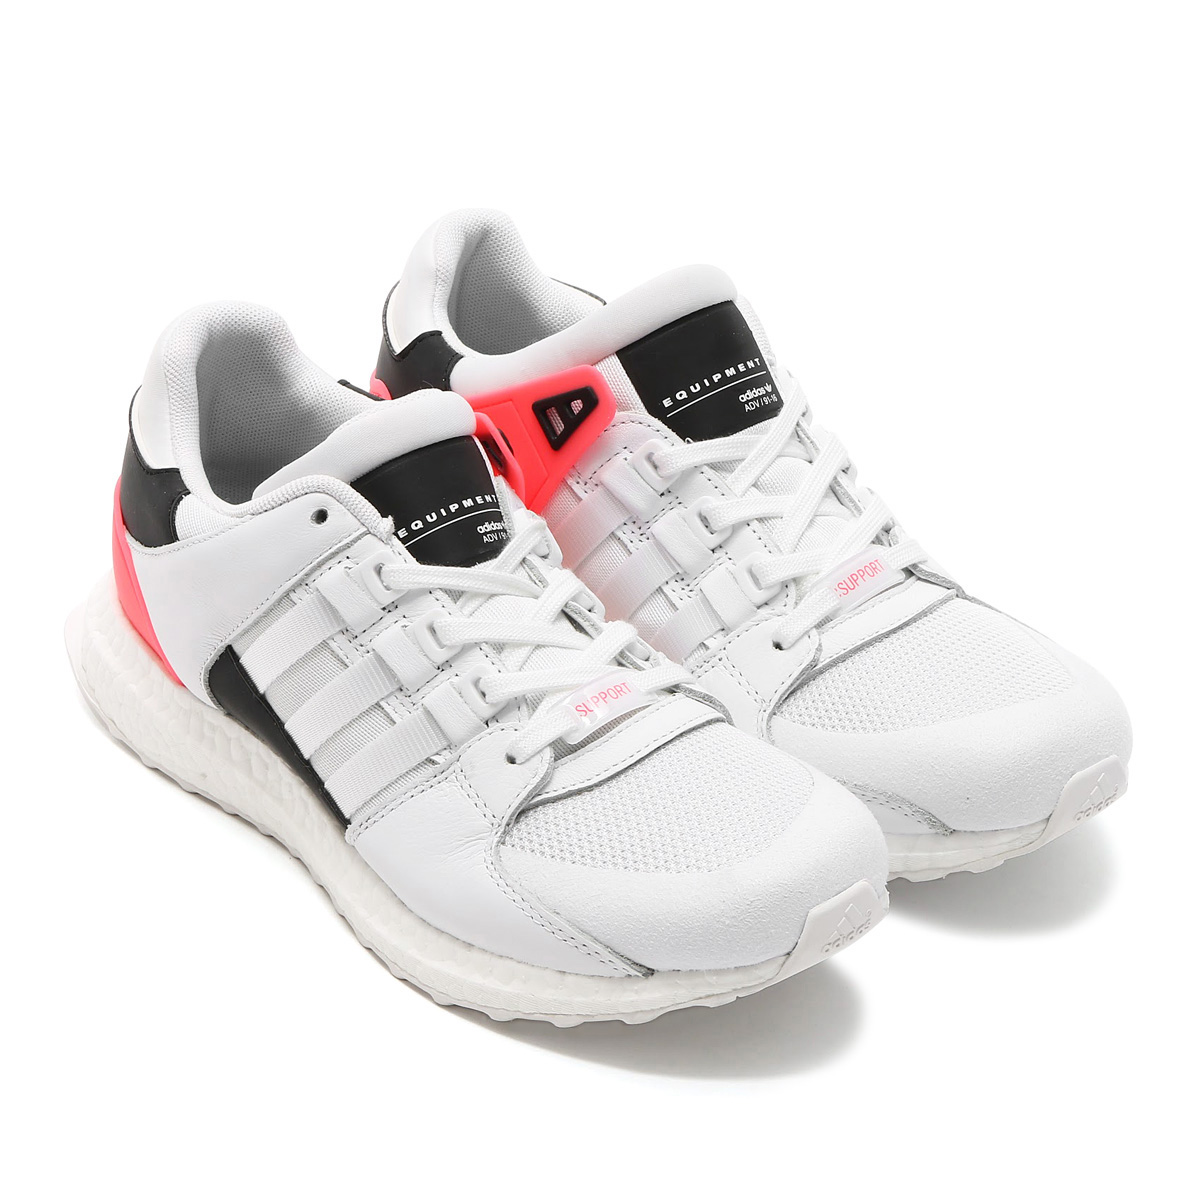 adidas Originals EQT SUPPORT ULT (アディダス EQT サポート ULT ) RUNNING WHITE/RUNNING WHITE/TURBO【メンズ スニーカー】17SS-I